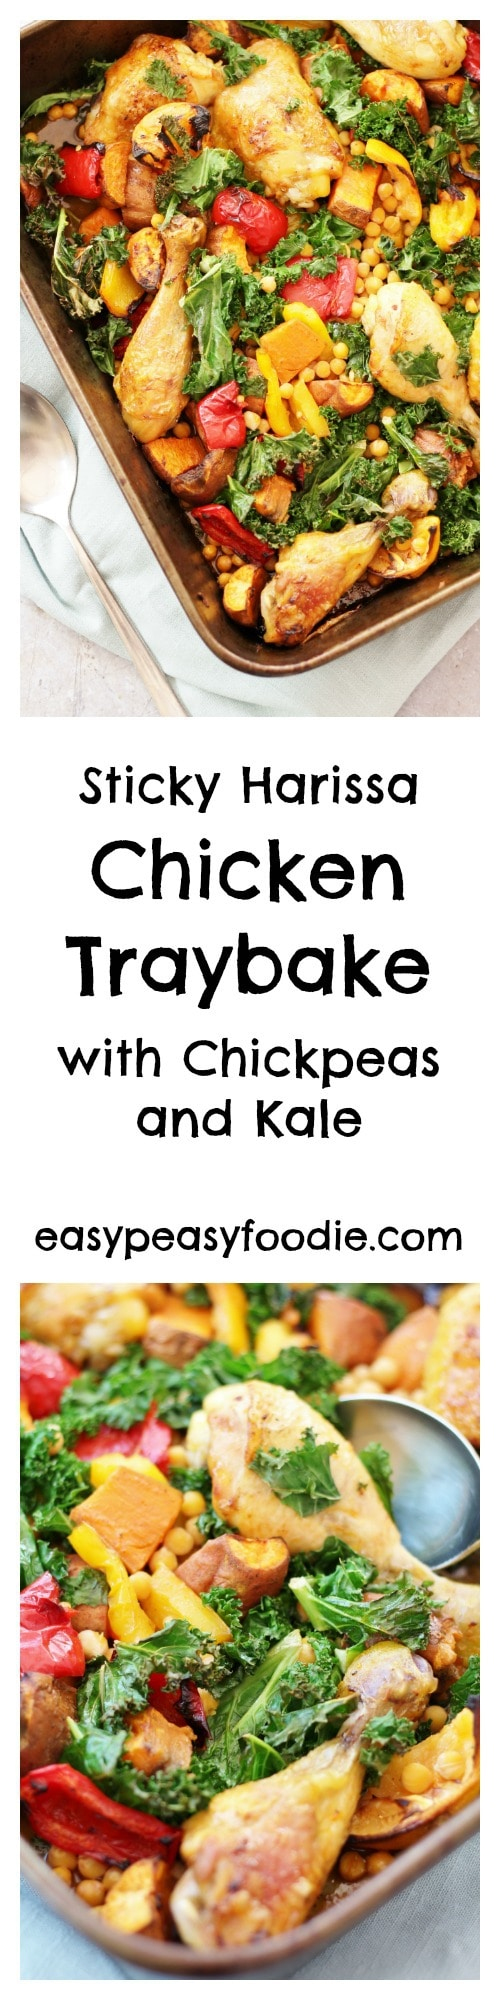 This Sticky Harissa Chicken Traybake, is simple, quick and delicious - perfect for busy weeknights. It's also healthy, gluten free and dairy free! #chicken #stickychicken #harissa #harissachicken #chickentraybake #traybake #onepan #easydinners #glutenfree #dairyfree #midweekmeals #familydinners #easypeasyfoodie